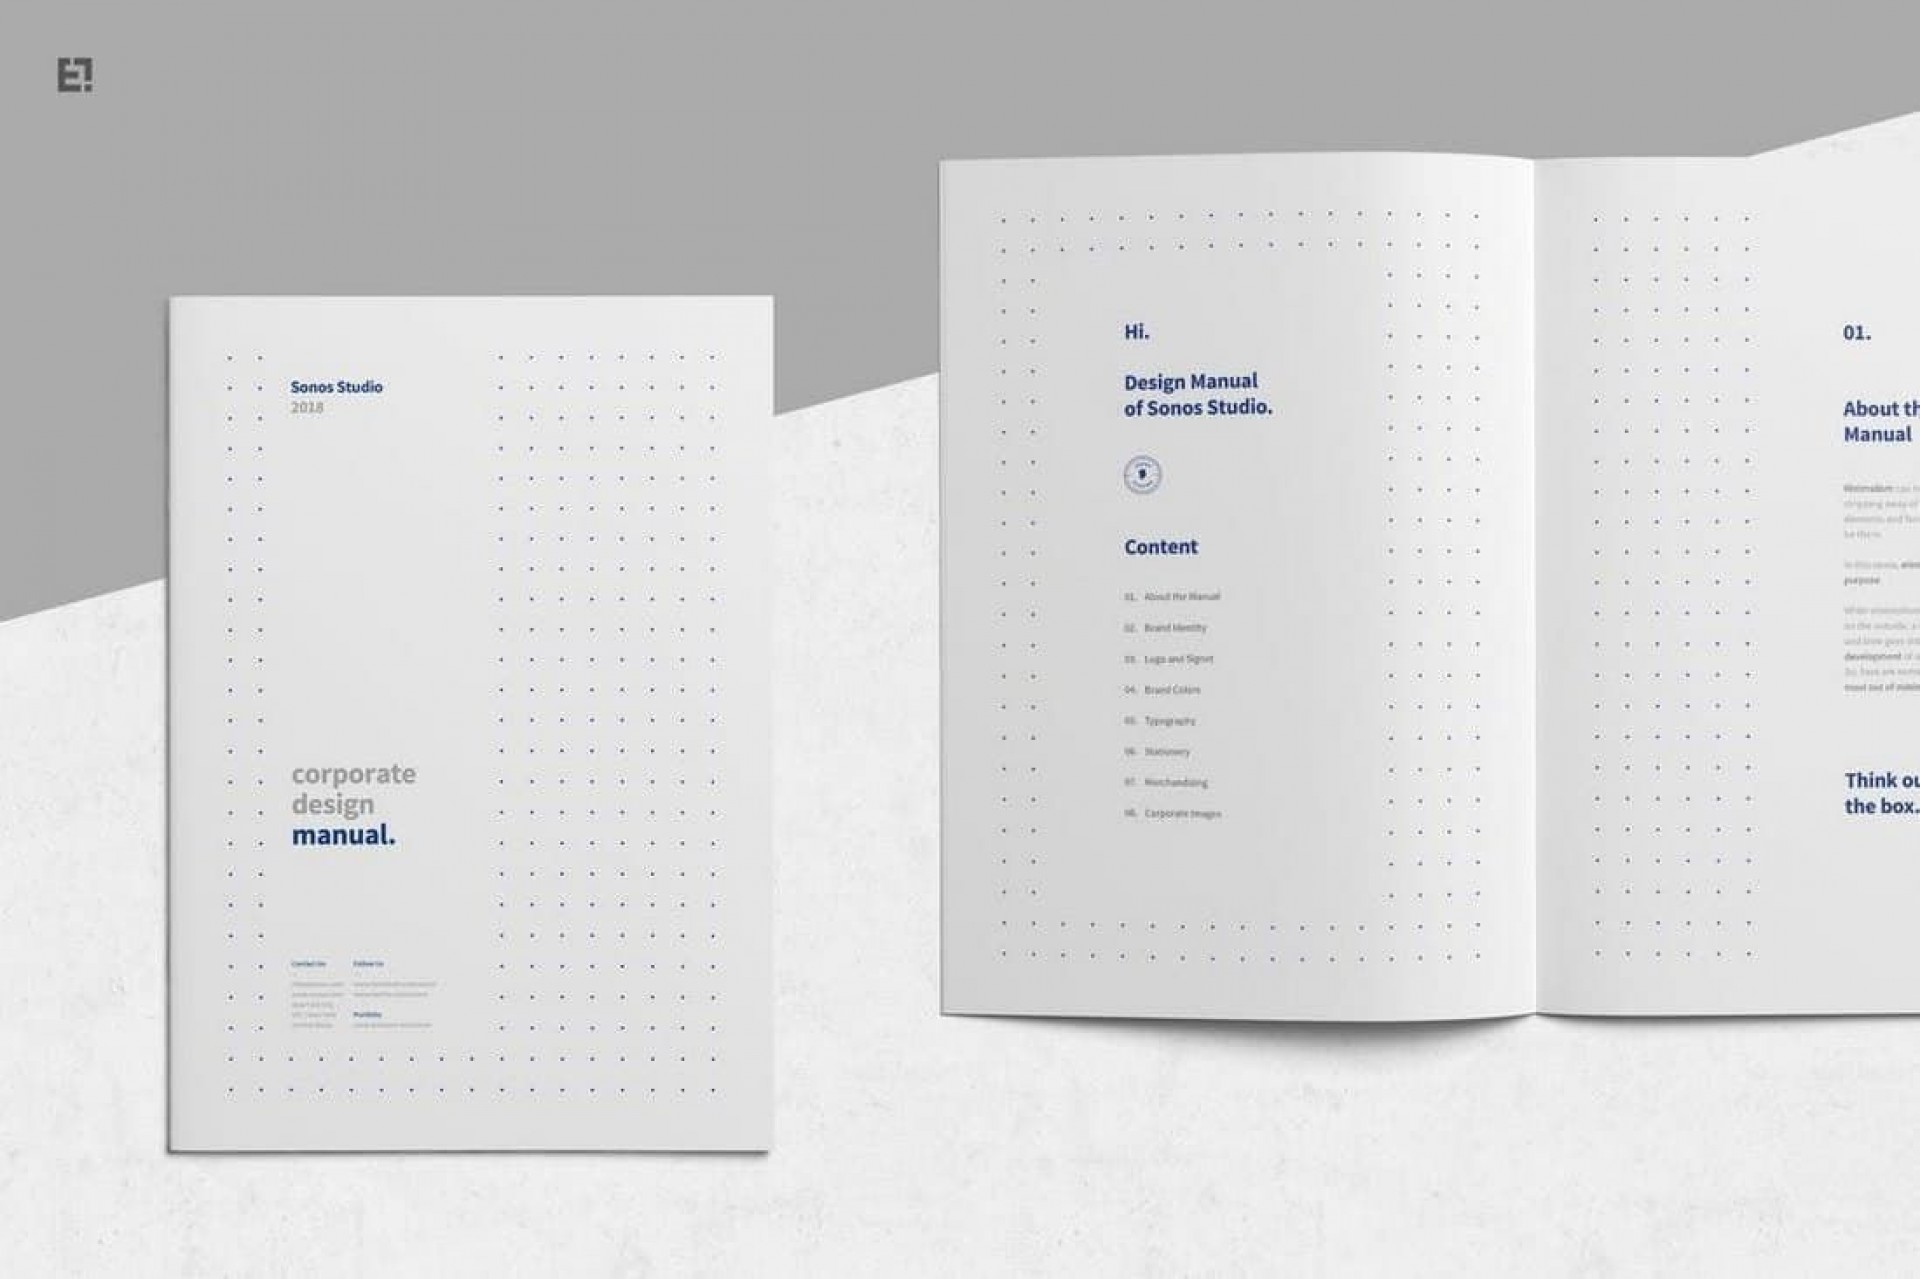 004 Simple Indesign Book Layout Template Idea  Free Download1920